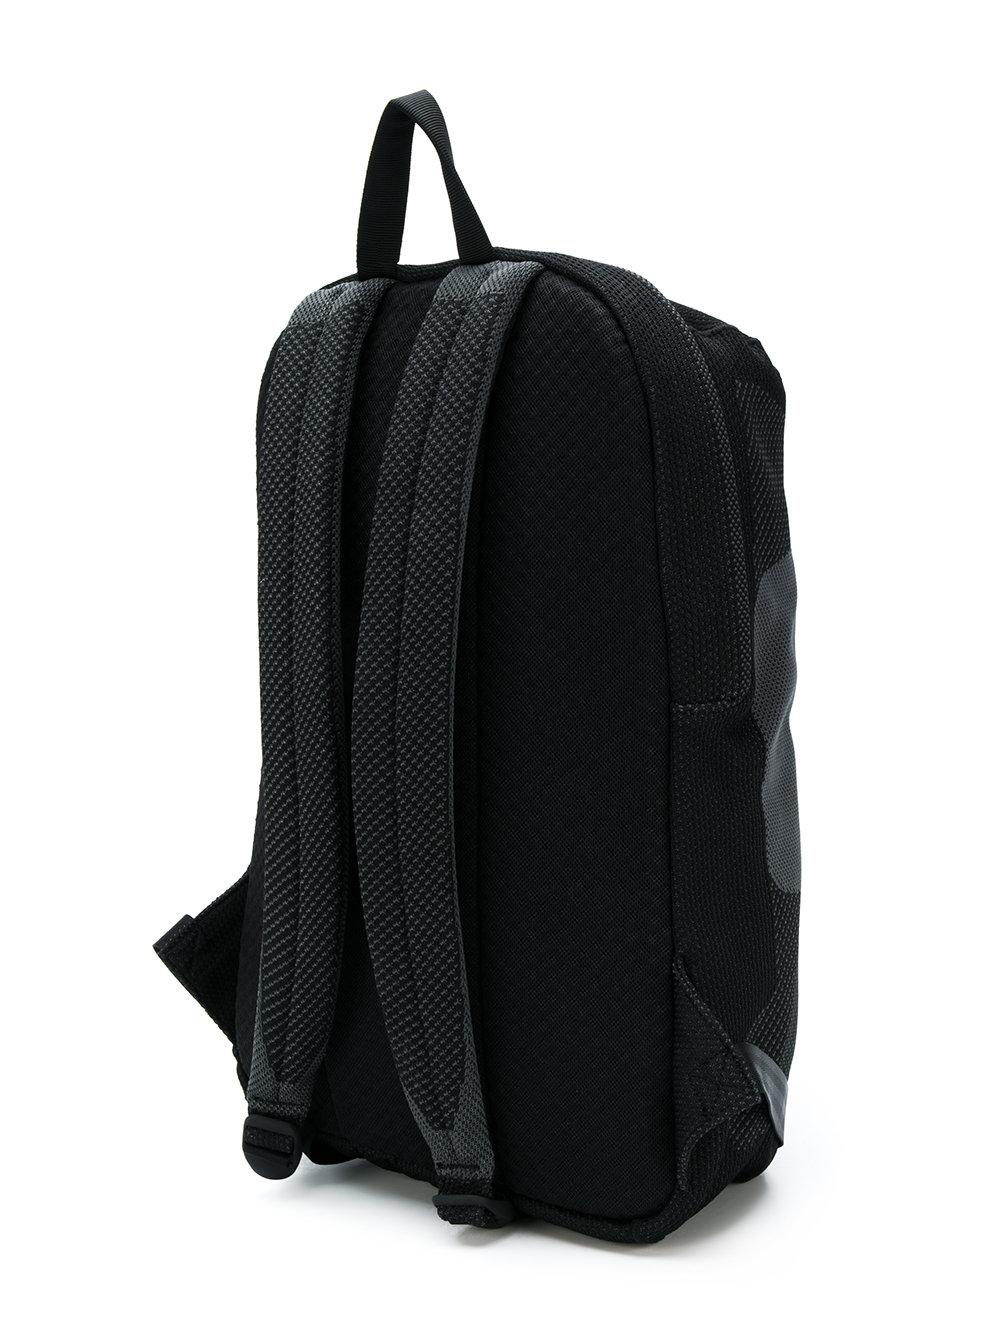 ee3c01302ce Lyst - Herschel Supply Co. Dayton Apex Knit Backpack in Black for Men